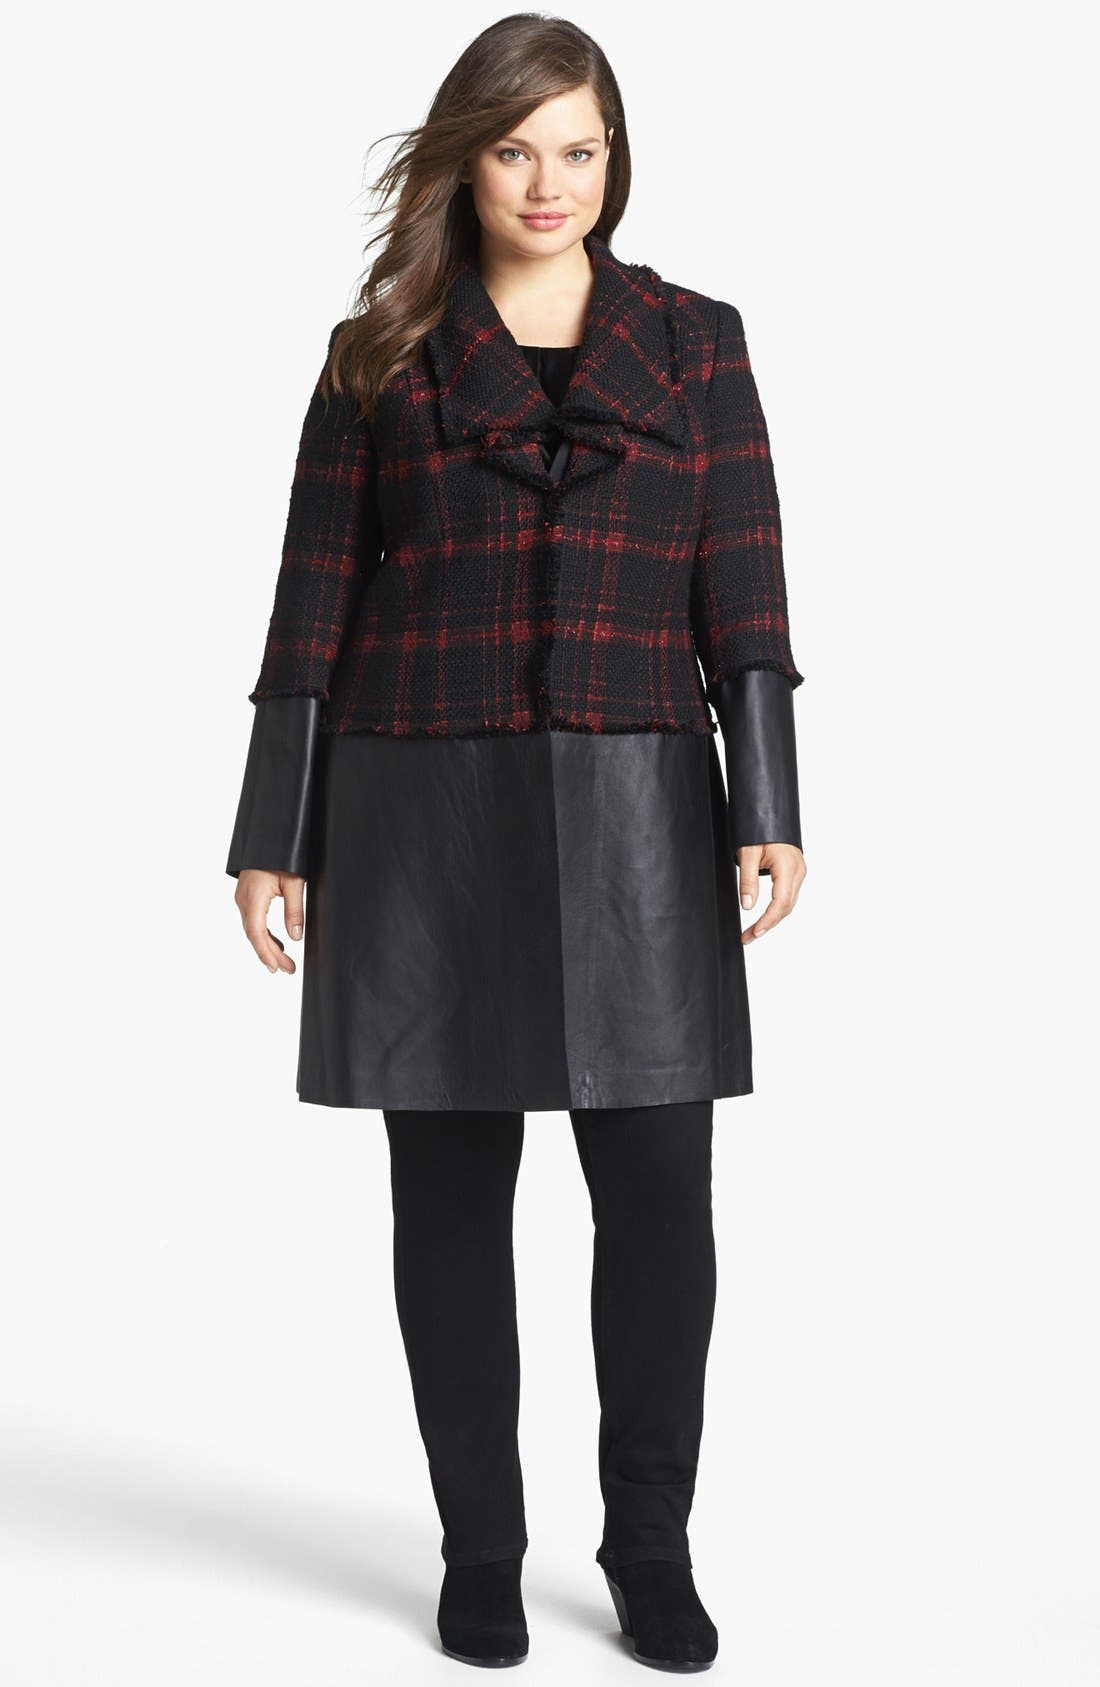 Alternate Image 1 Selected - Lafayette 148 New York 'Cecille' Plaid Tweed & Leather Coat (Plus Size)